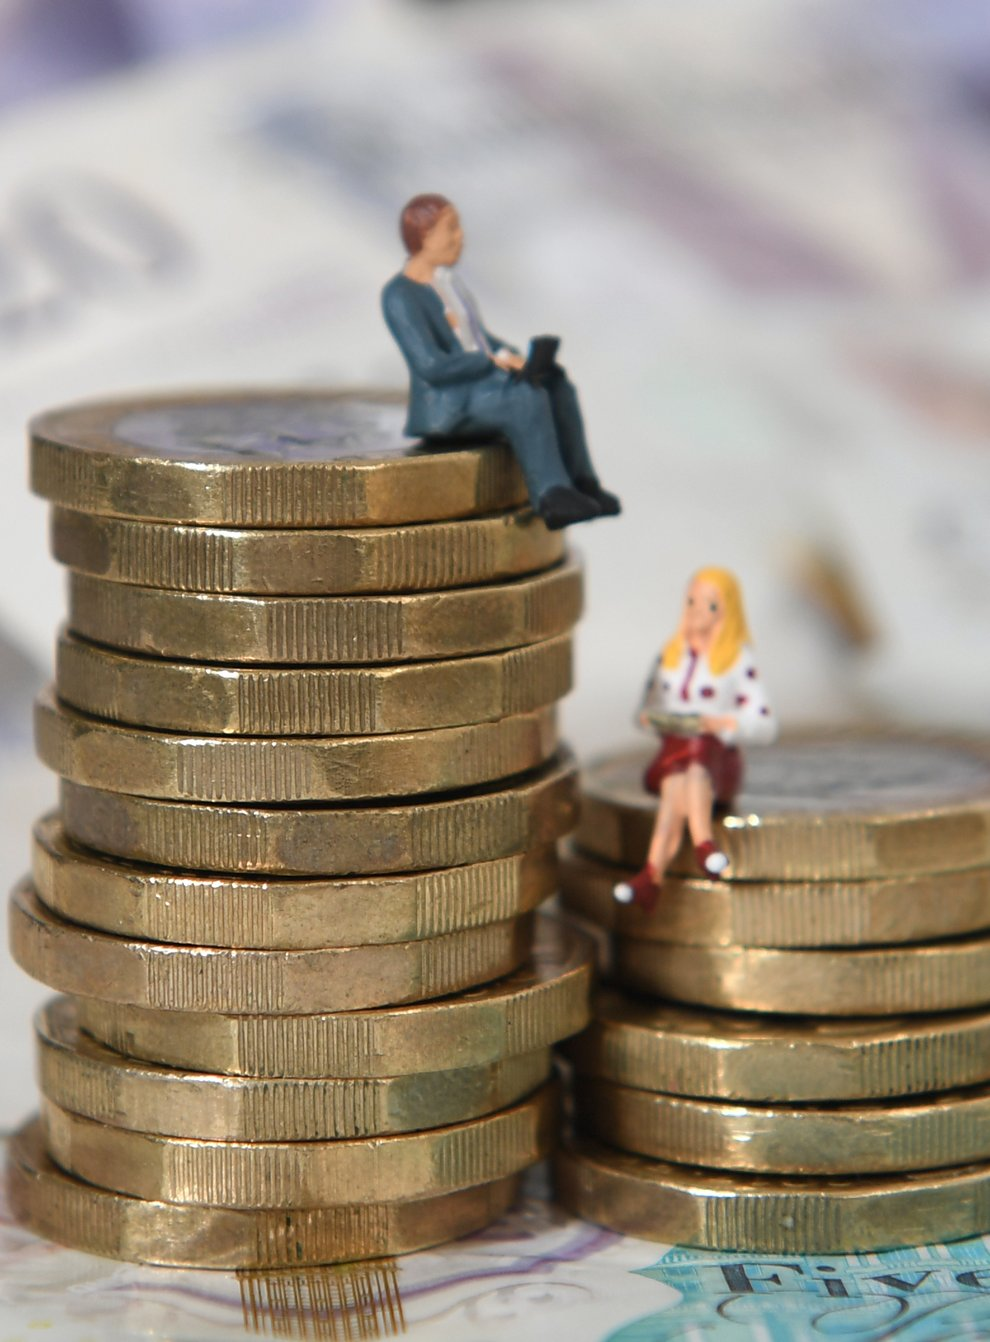 Models of a man and woman on unequal piles of coins